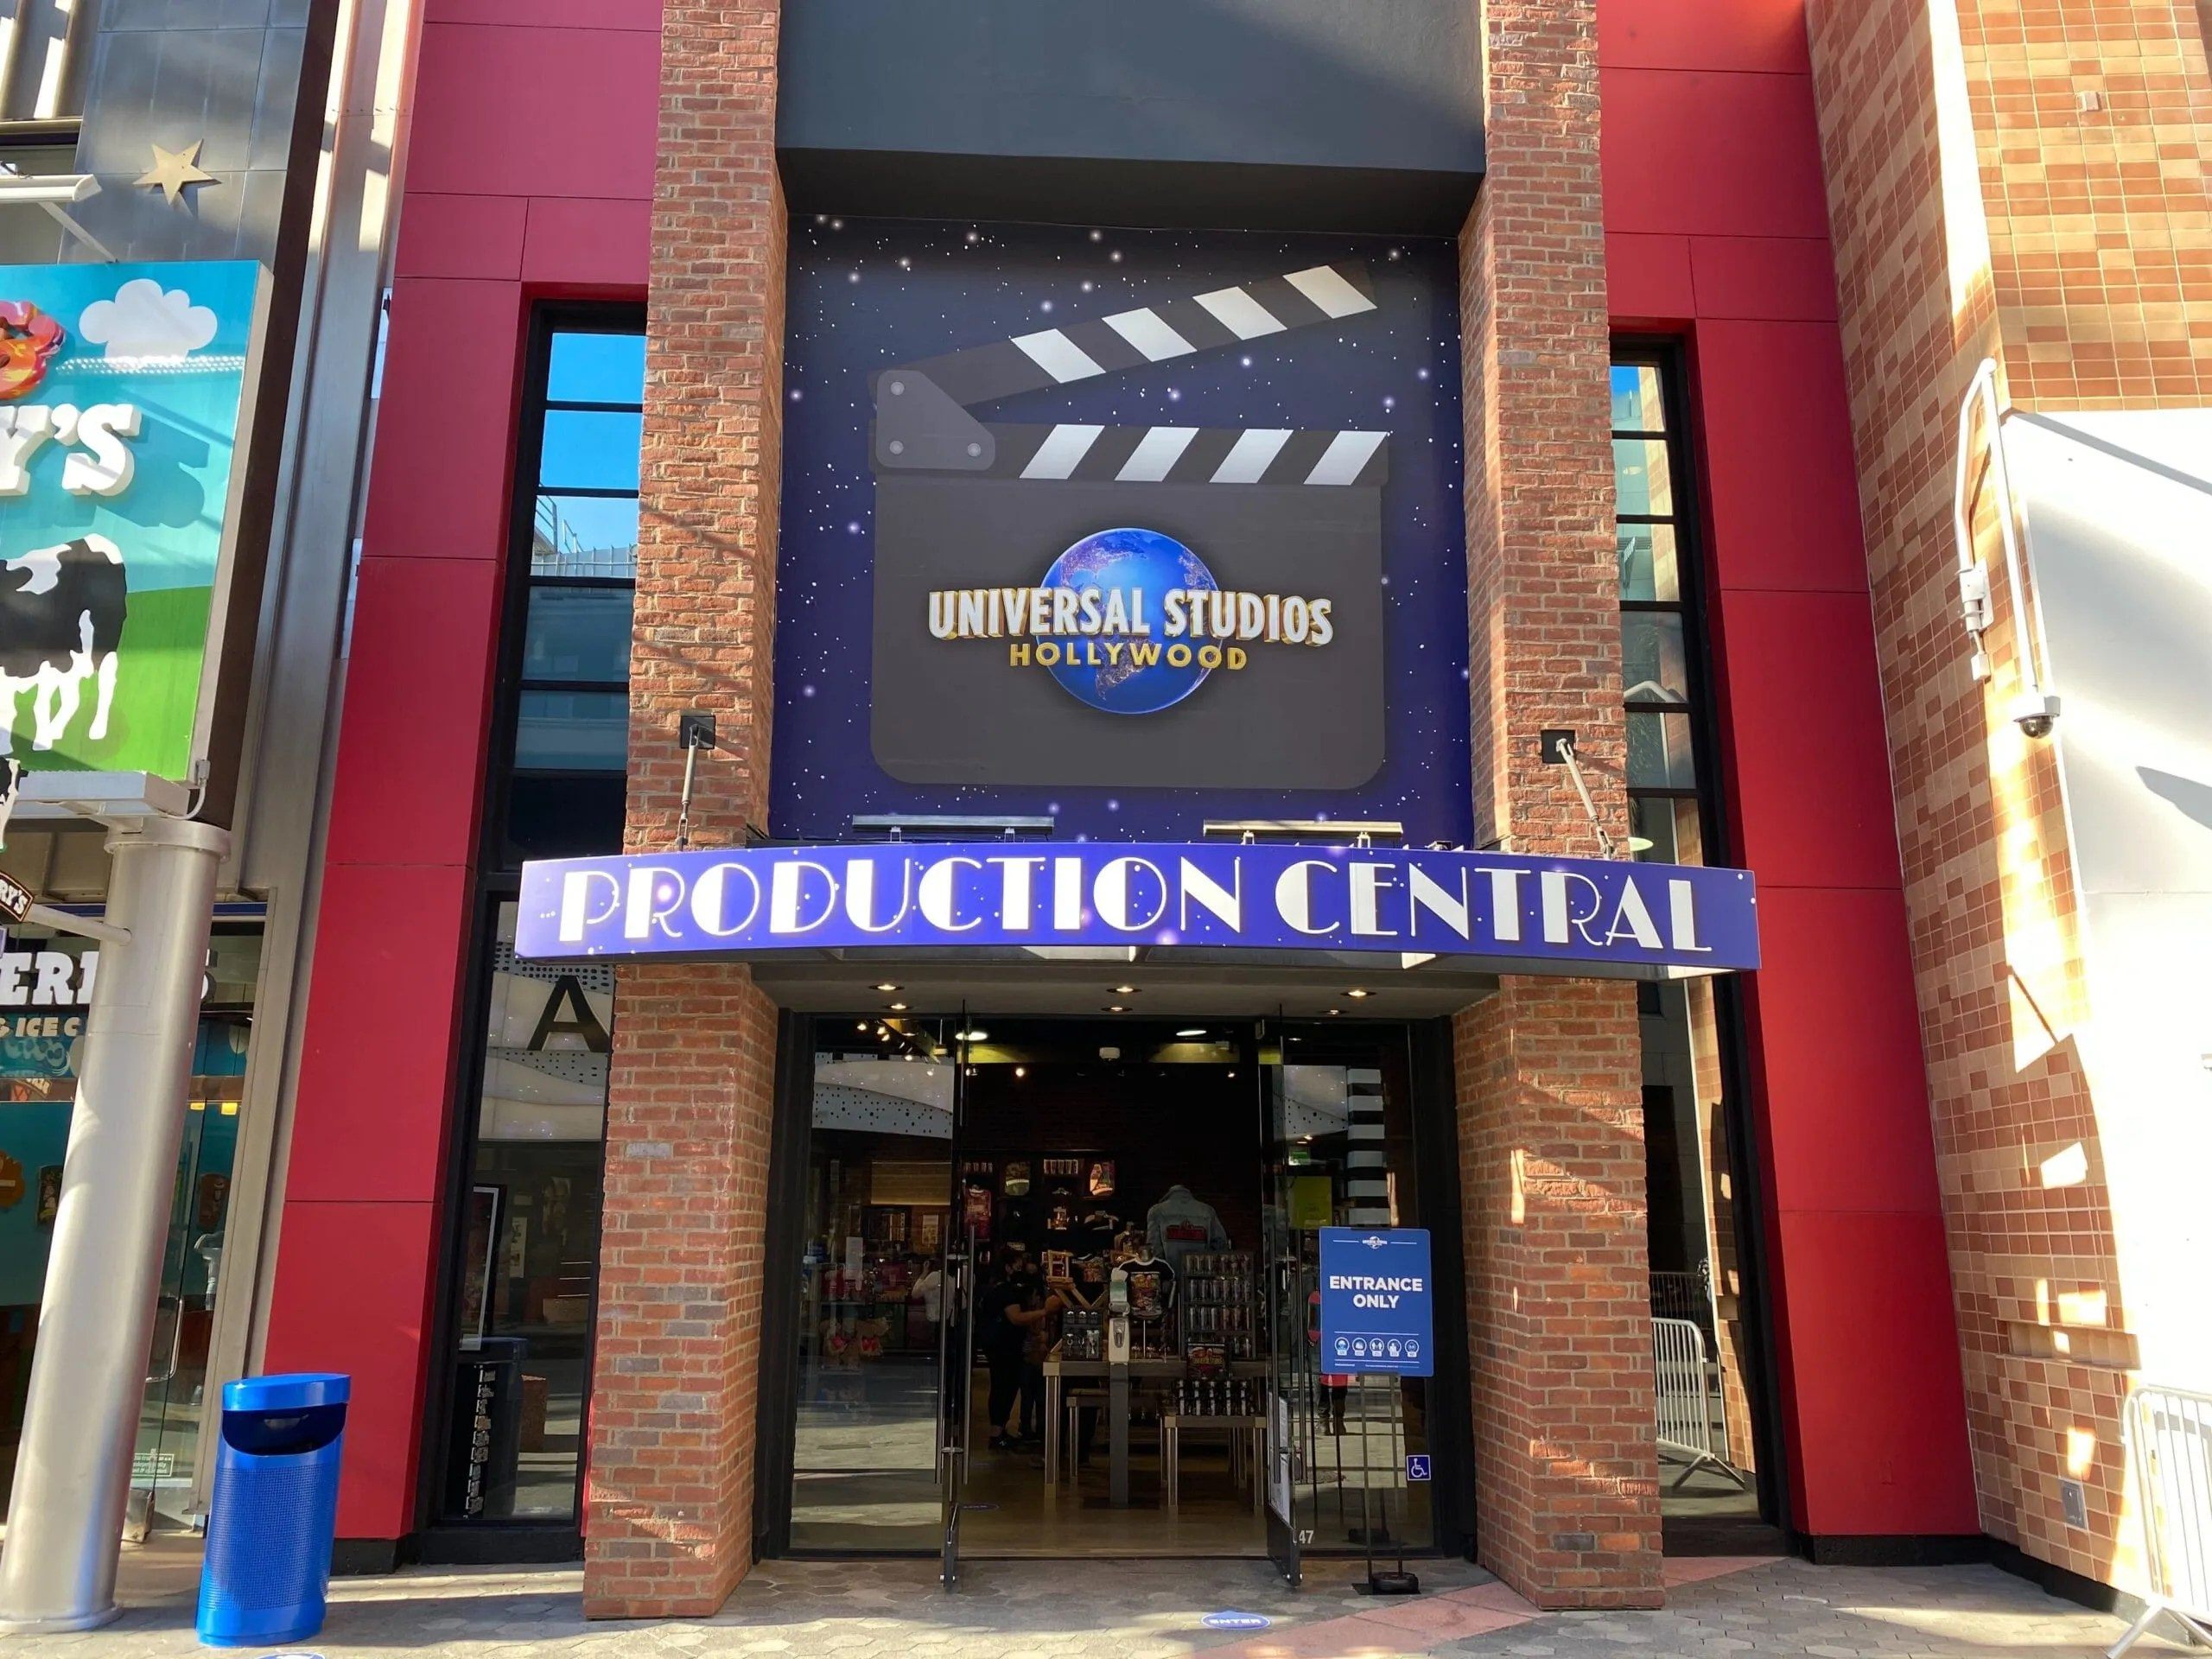 PHOTOS: New Production Central Store Now Open at Universal CityWalk Hollywood